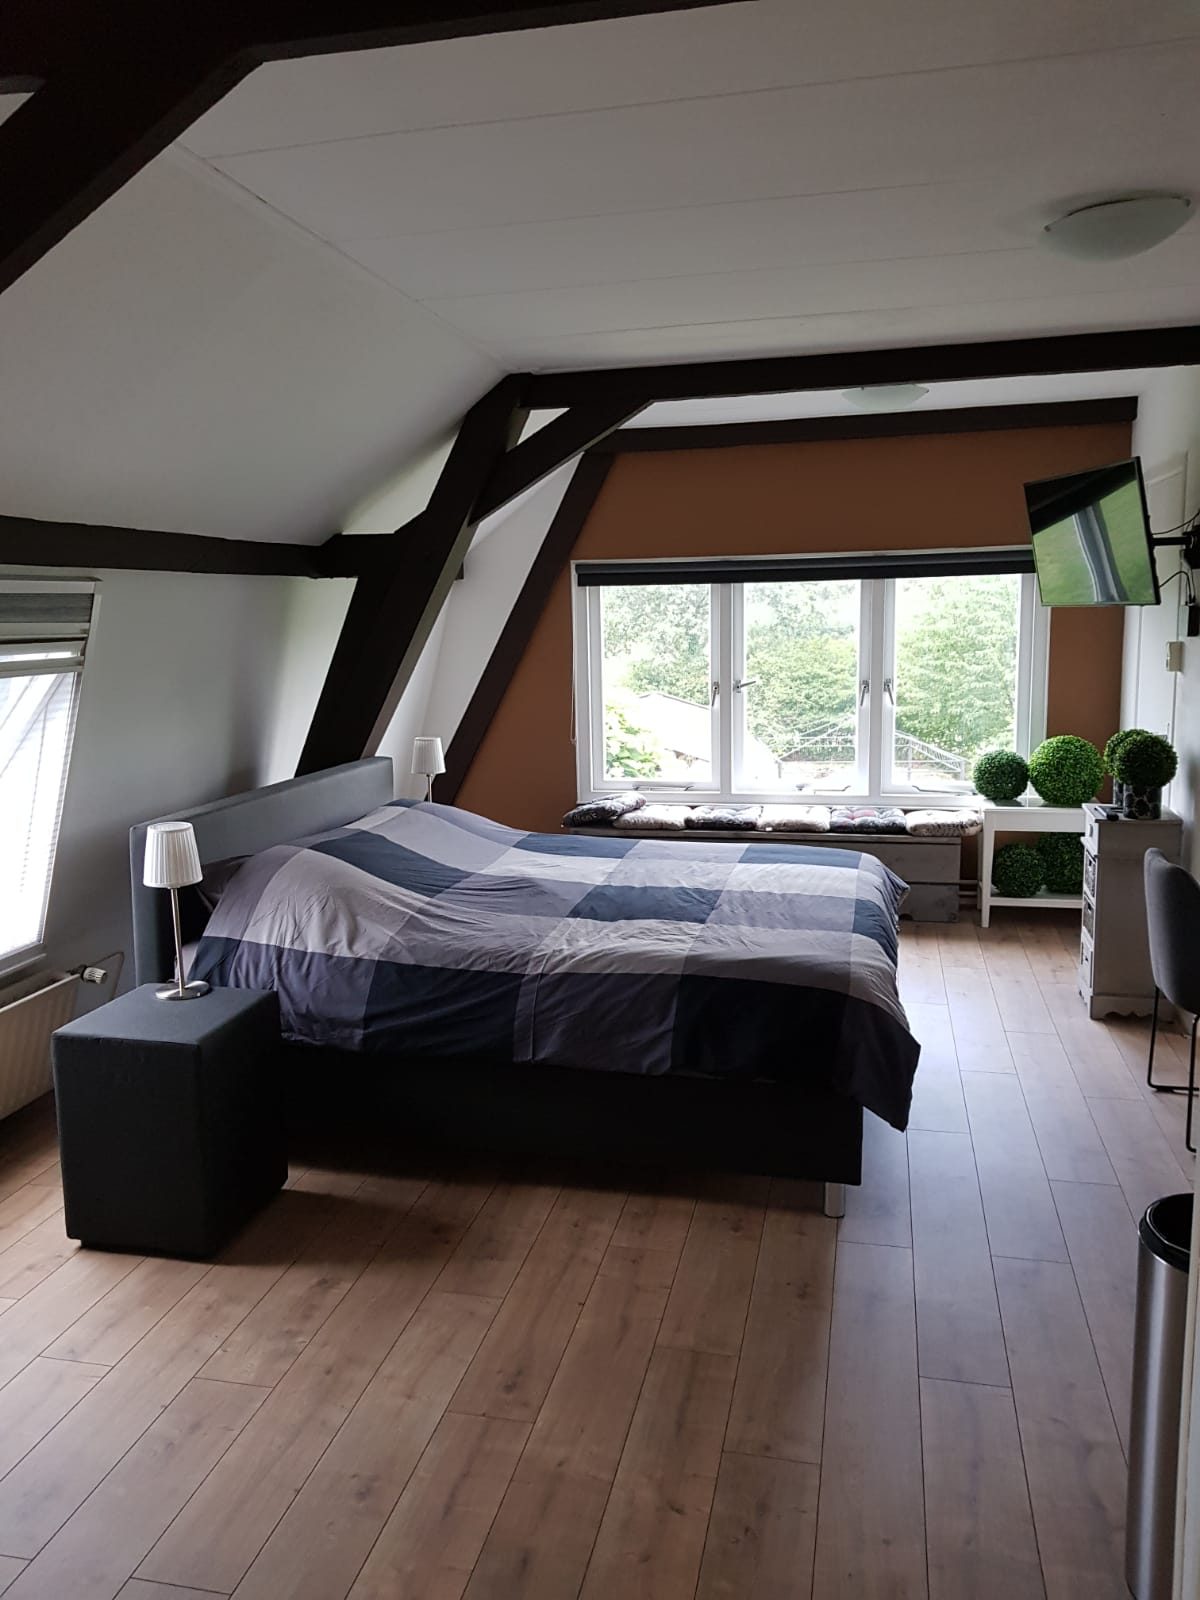 Bed and breakfast kamer almelo